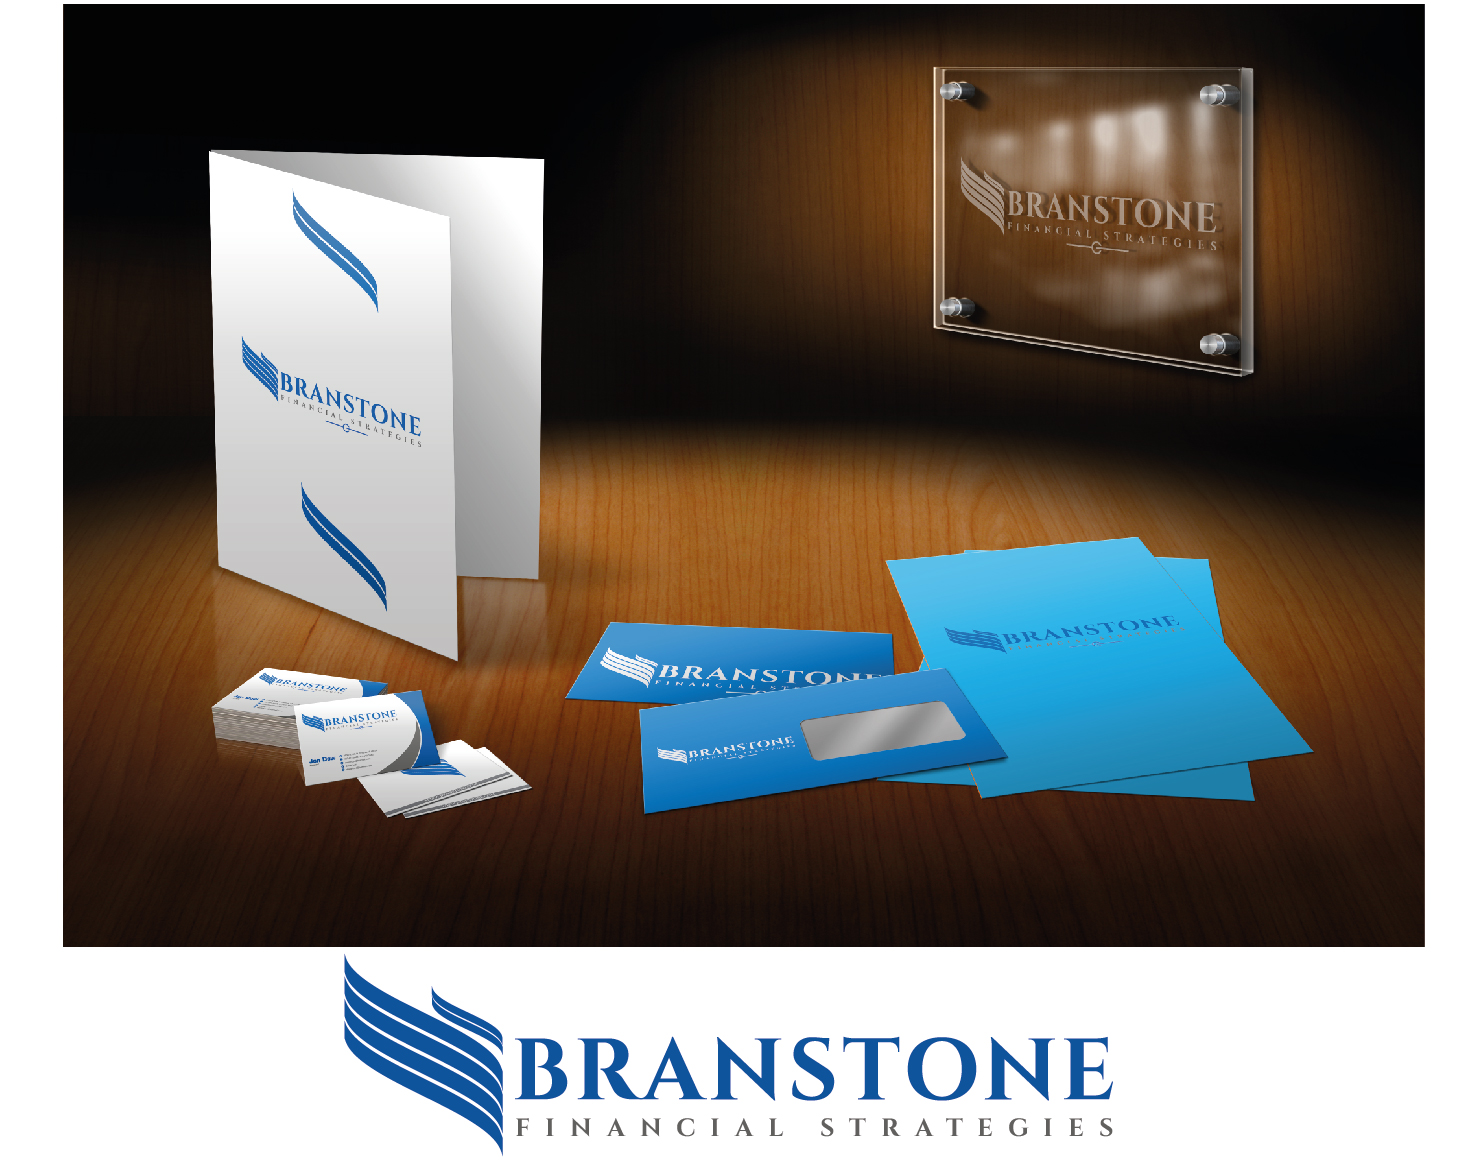 Logo Design by VENTSISLAV KOVACHEV - Entry No. 126 in the Logo Design Contest Inspiring Logo Design for Branstone Financial Strategies.